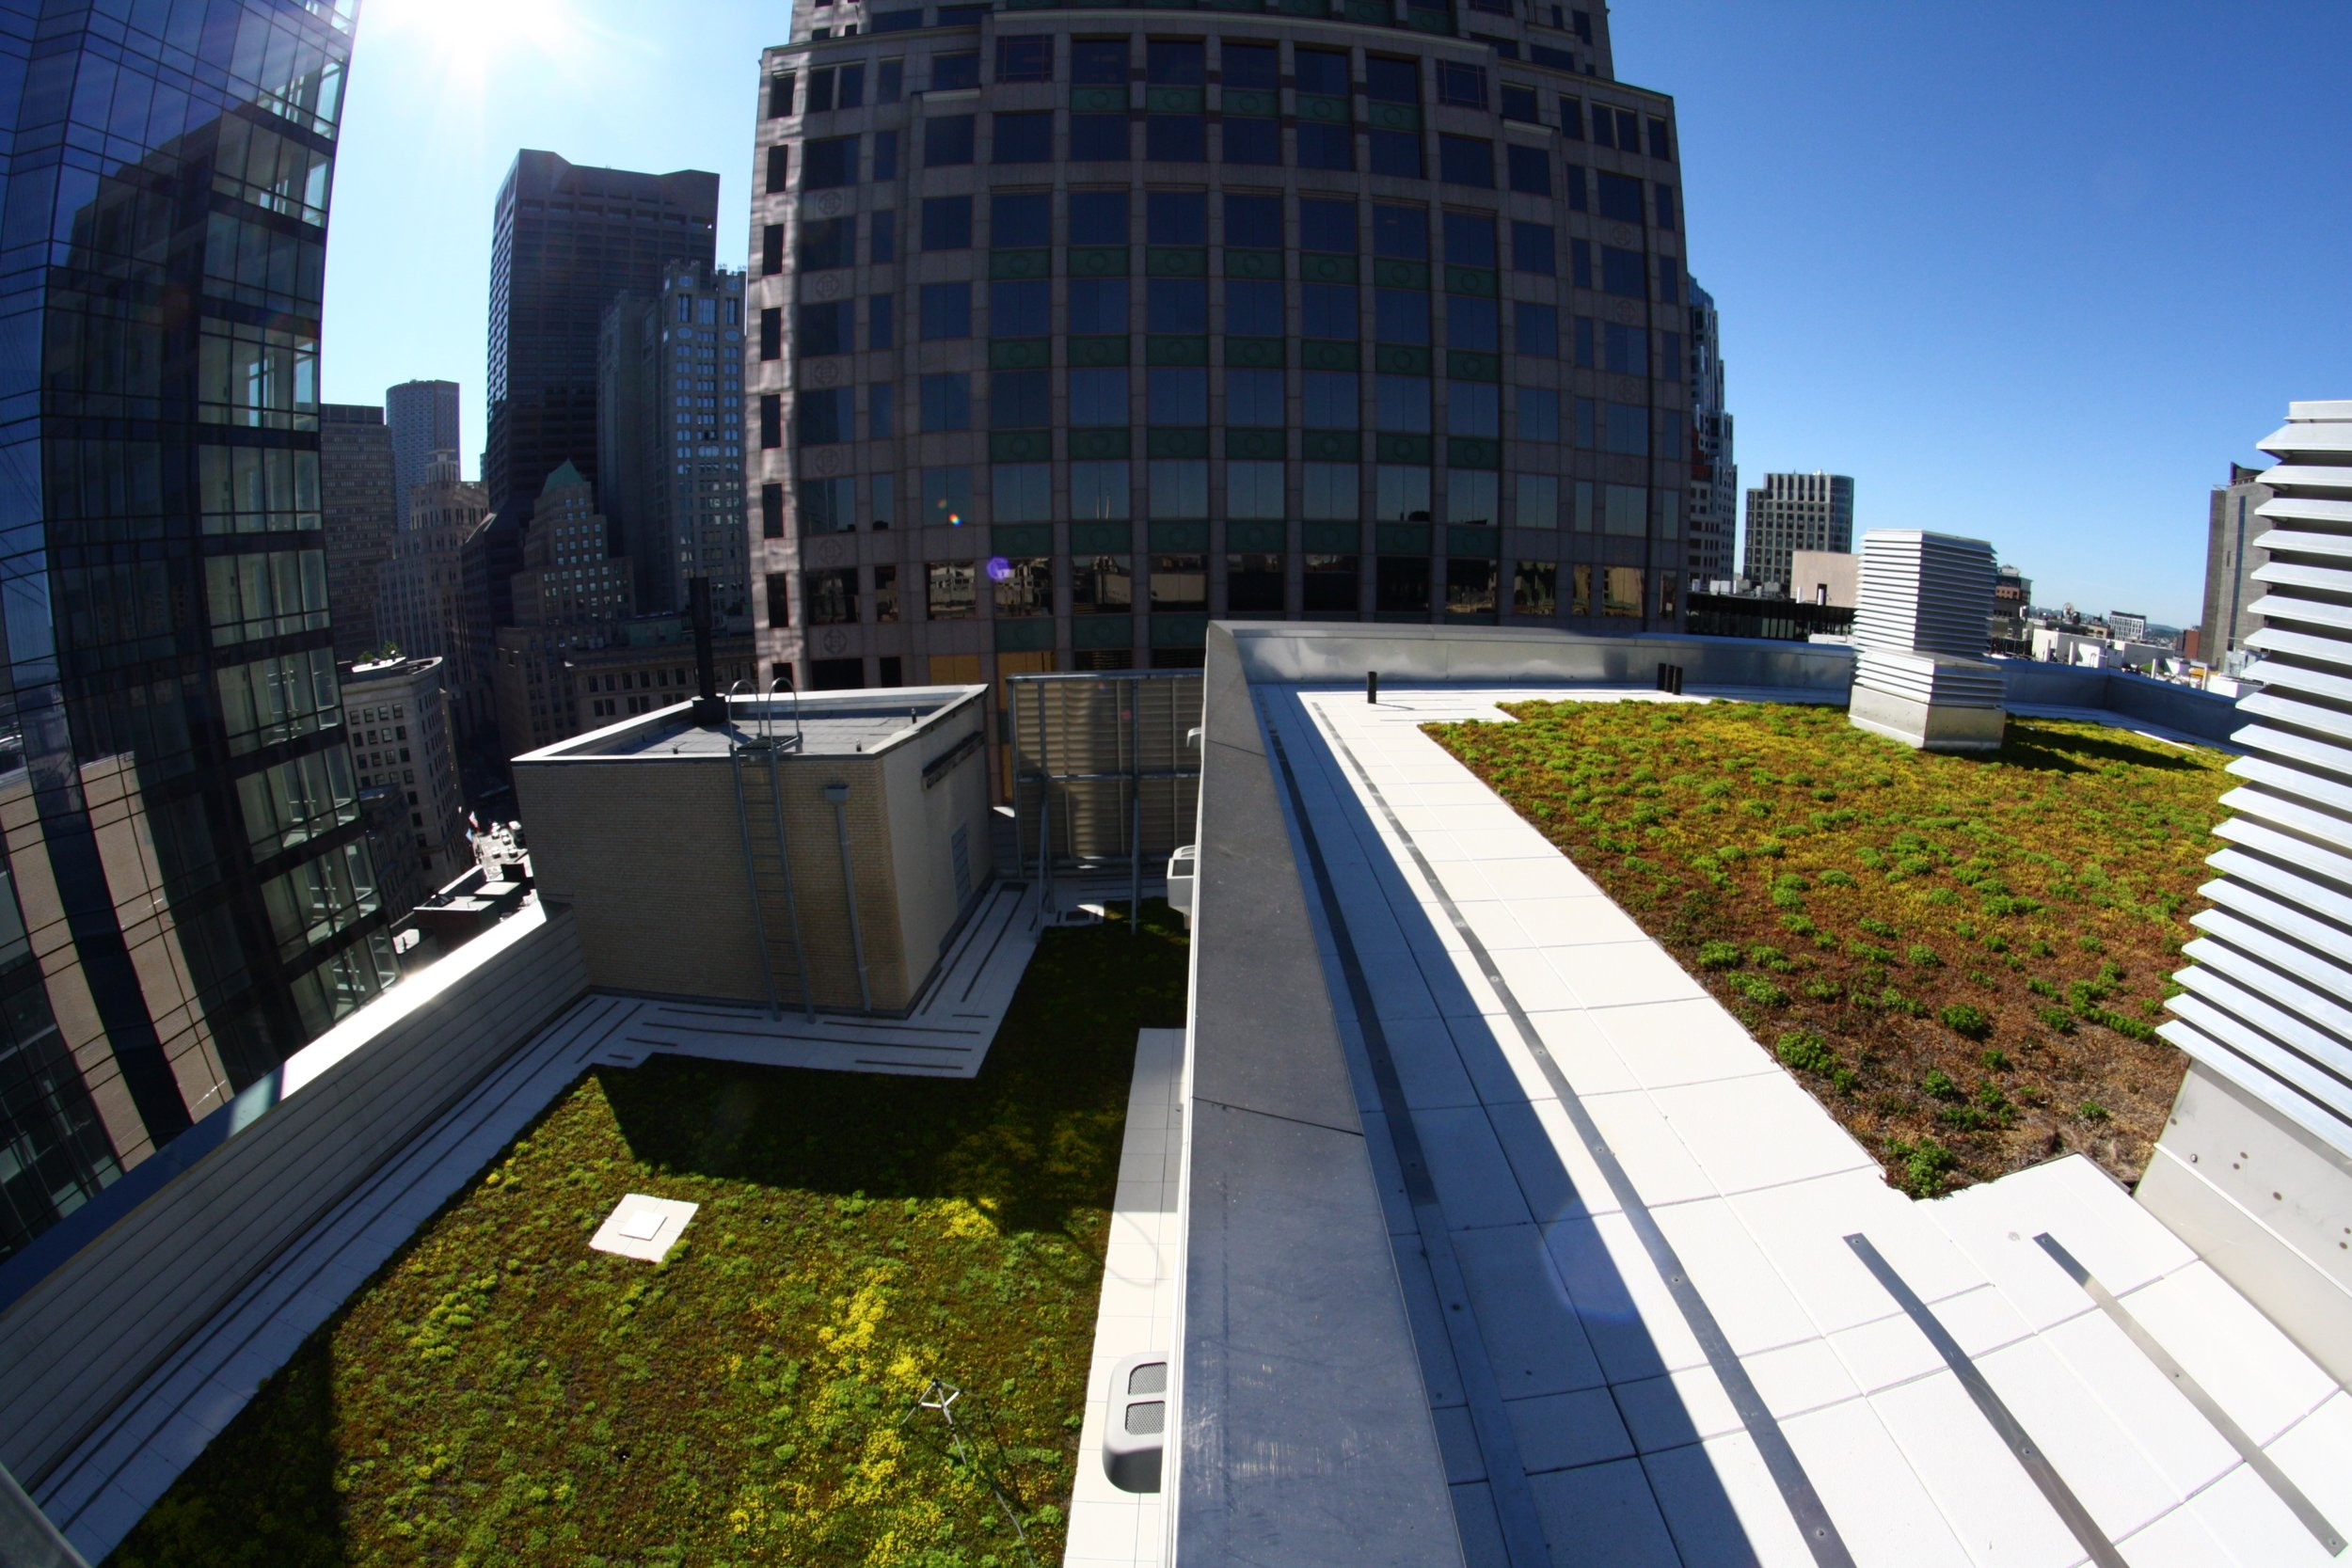 recover-green-roofs-rooftop-garden-downtown-crossing-2016-15.jpg